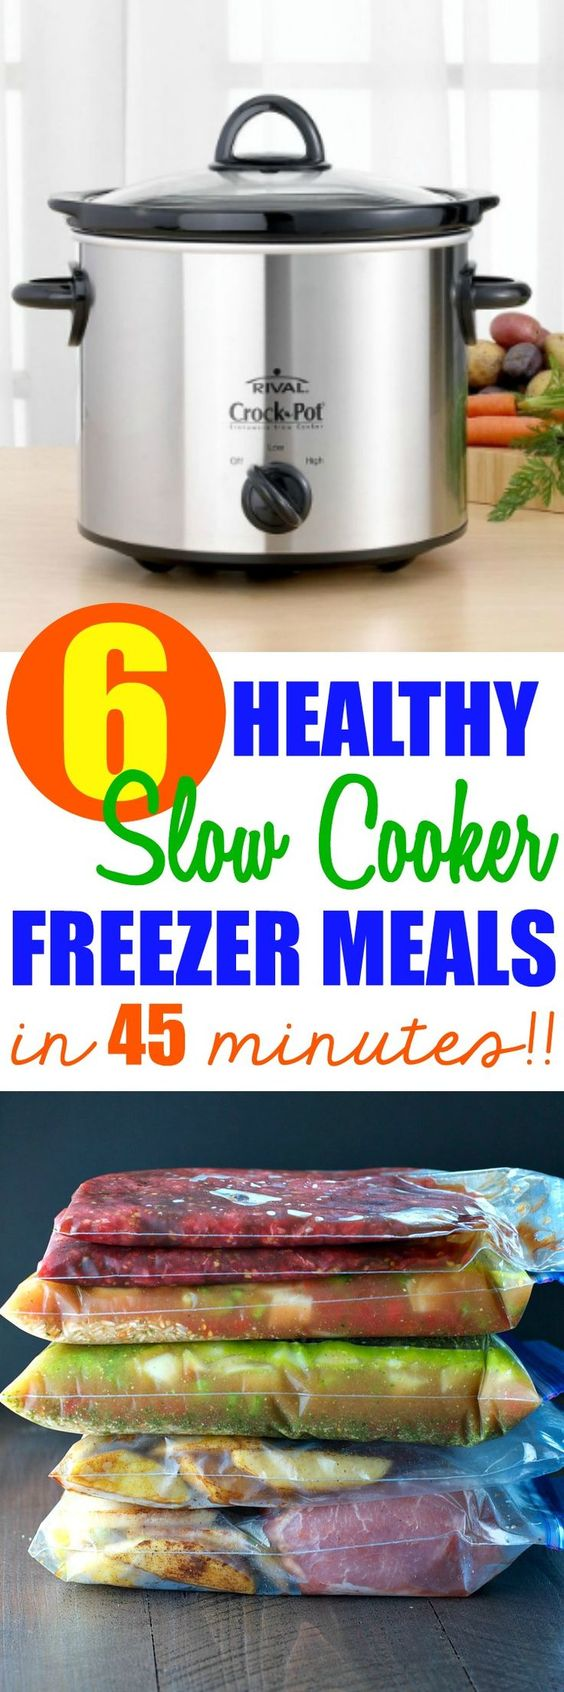 Instructions. Divide everything into two separate one gallon freezer bags, shake it up, seal, label and put in the freezer; On the day of cooking, dump it into your slow cooker and cook on high for 4 to 6 hours, or low hours, depending on your specific slow cooker.